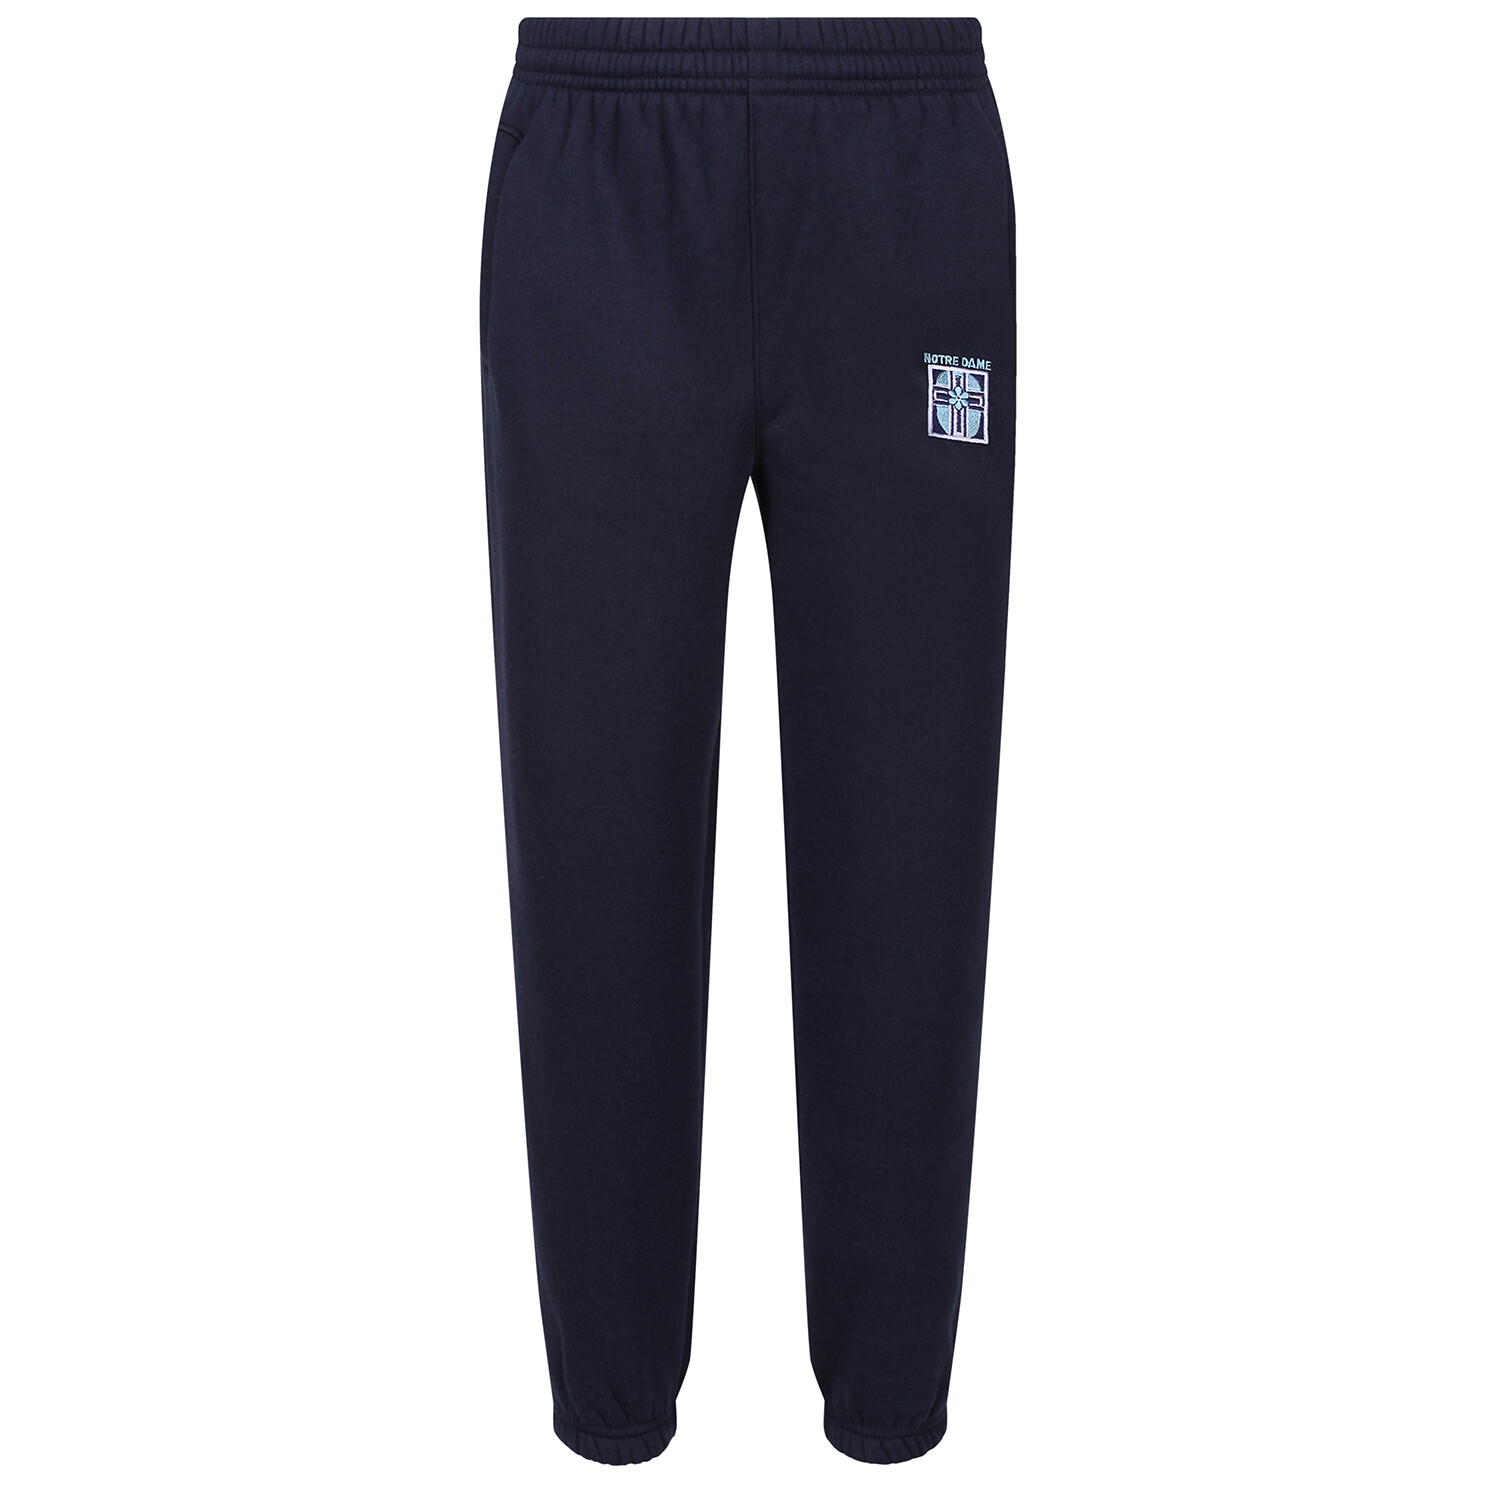 Notre Dame High Fleece Jog Pant for PE